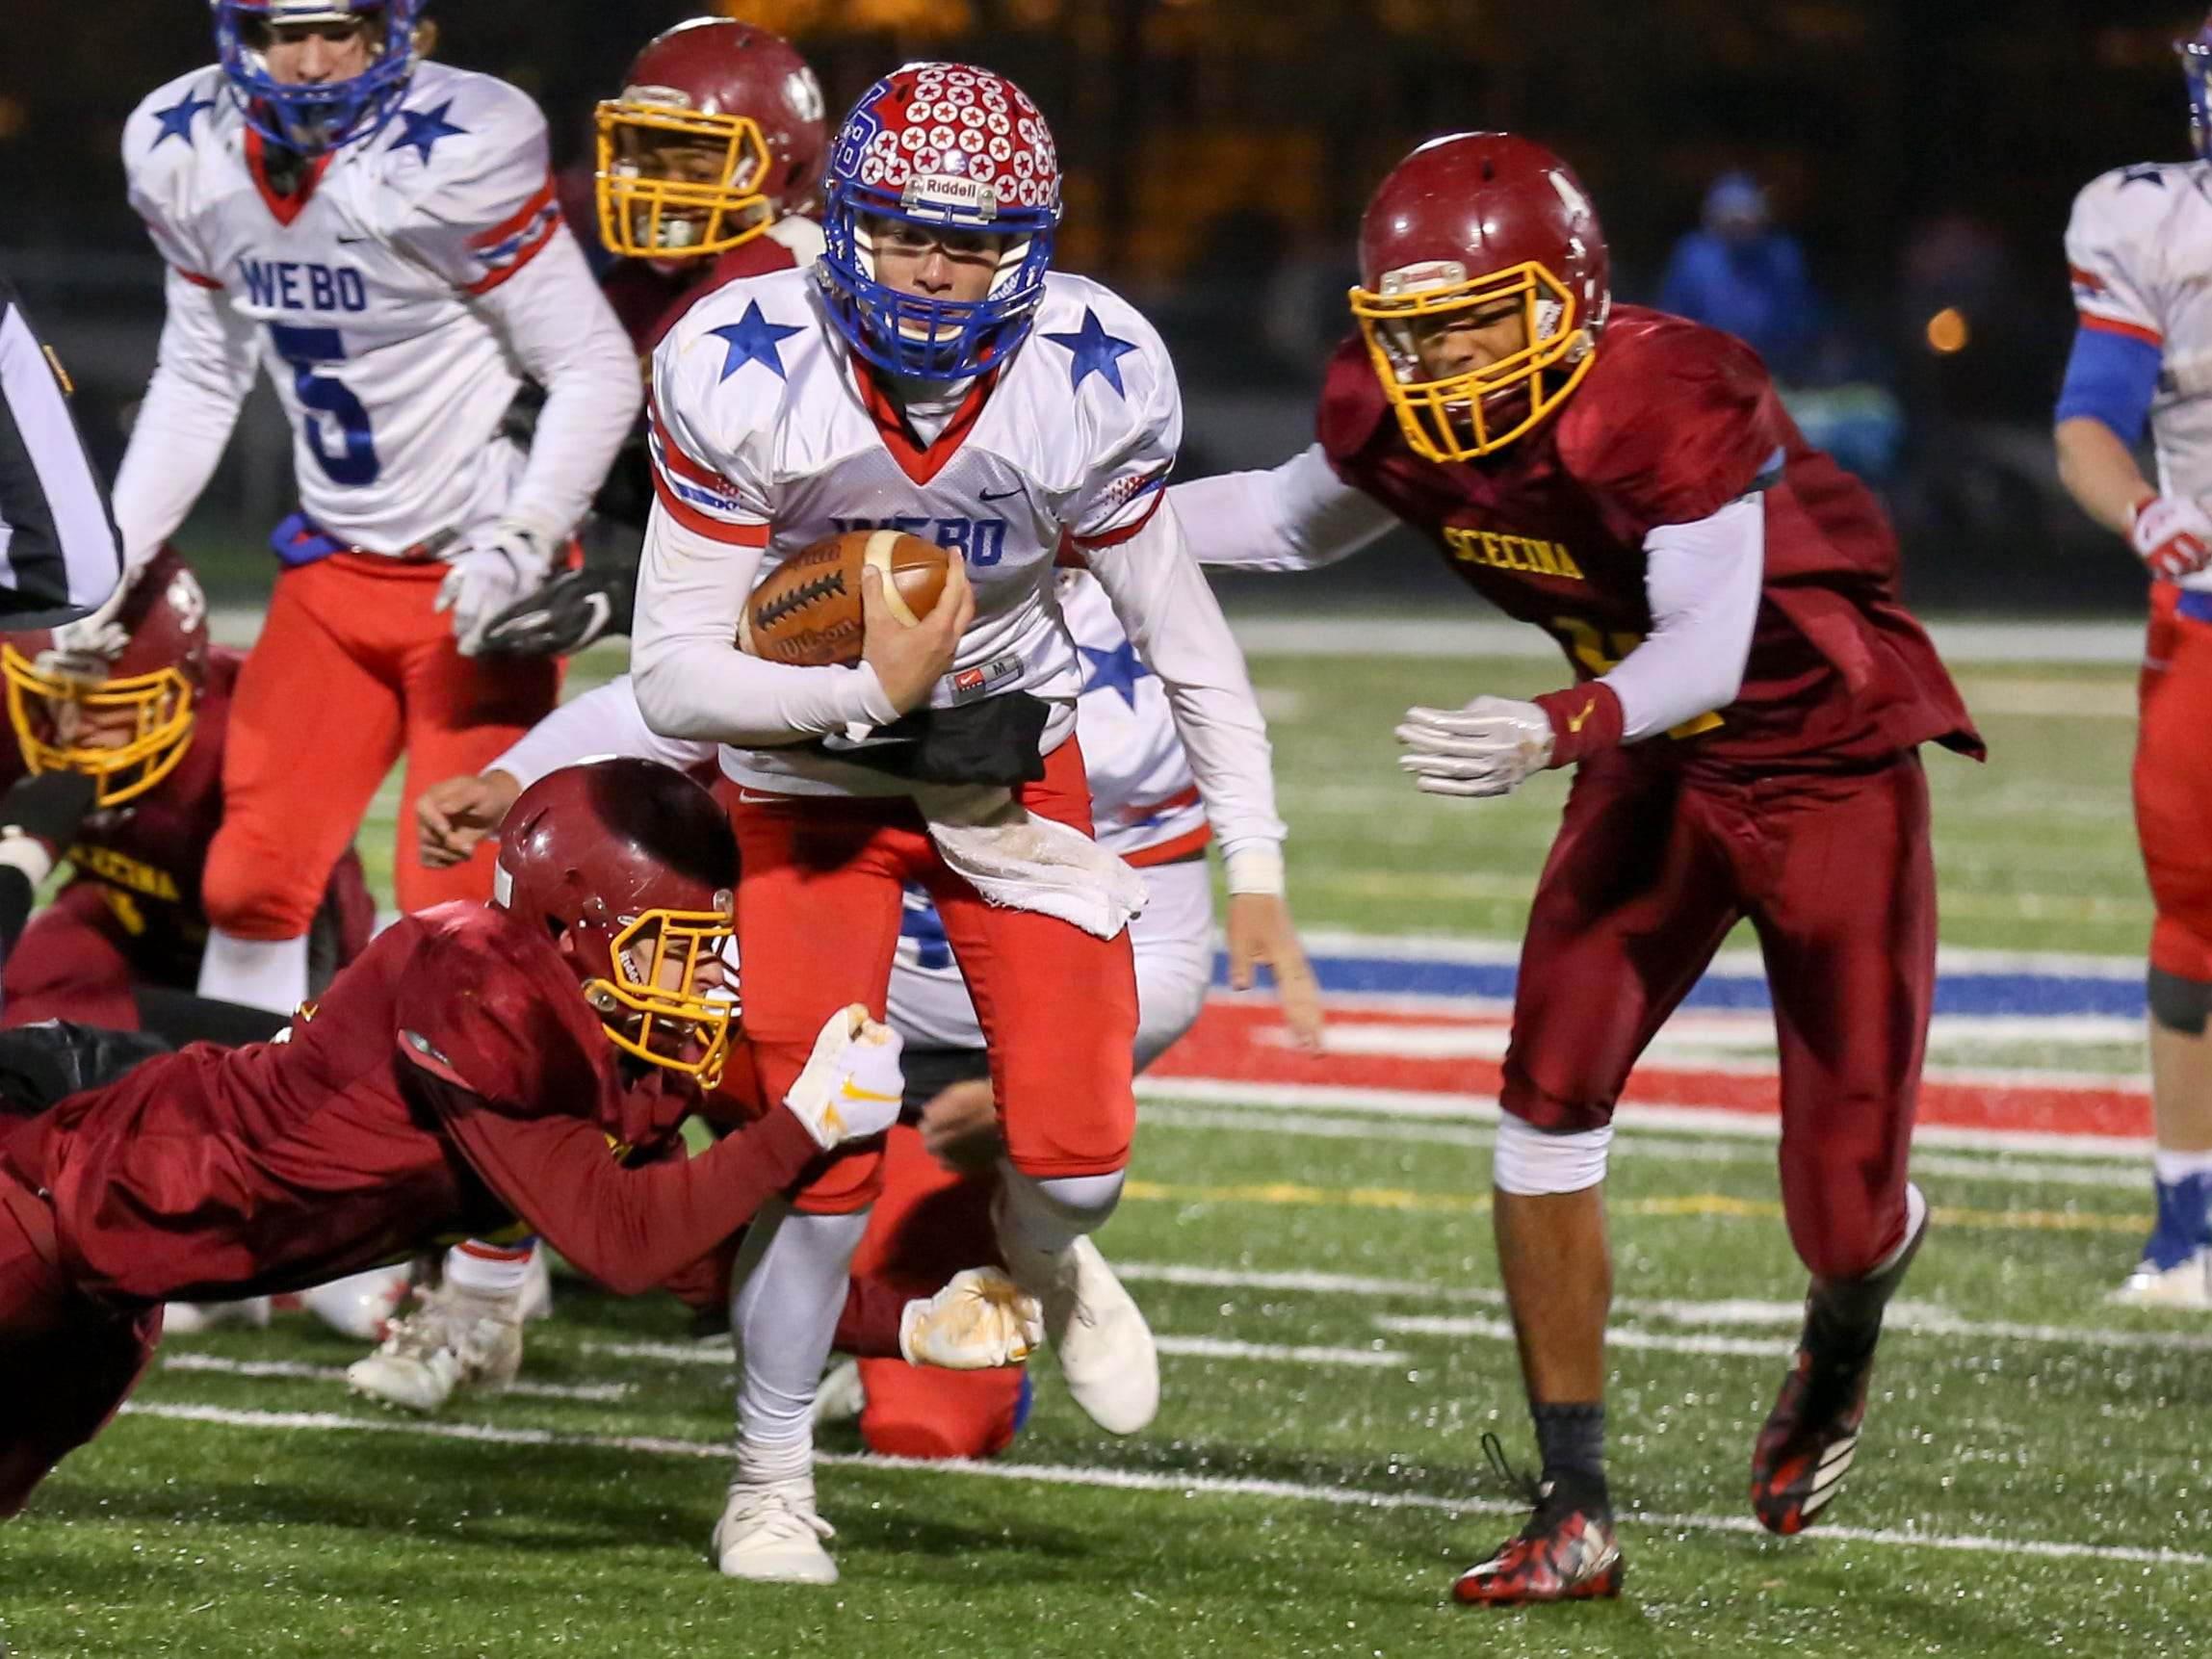 Western Boone's Spencer Wright (7) cannot find an opening as he keeps the ball and runs during the second half of Indianapolis Scecina vs Western Boone High School varsity football in the Class 2A Regional Championship held at Roncalli High School, Friday, November 9, 2018.